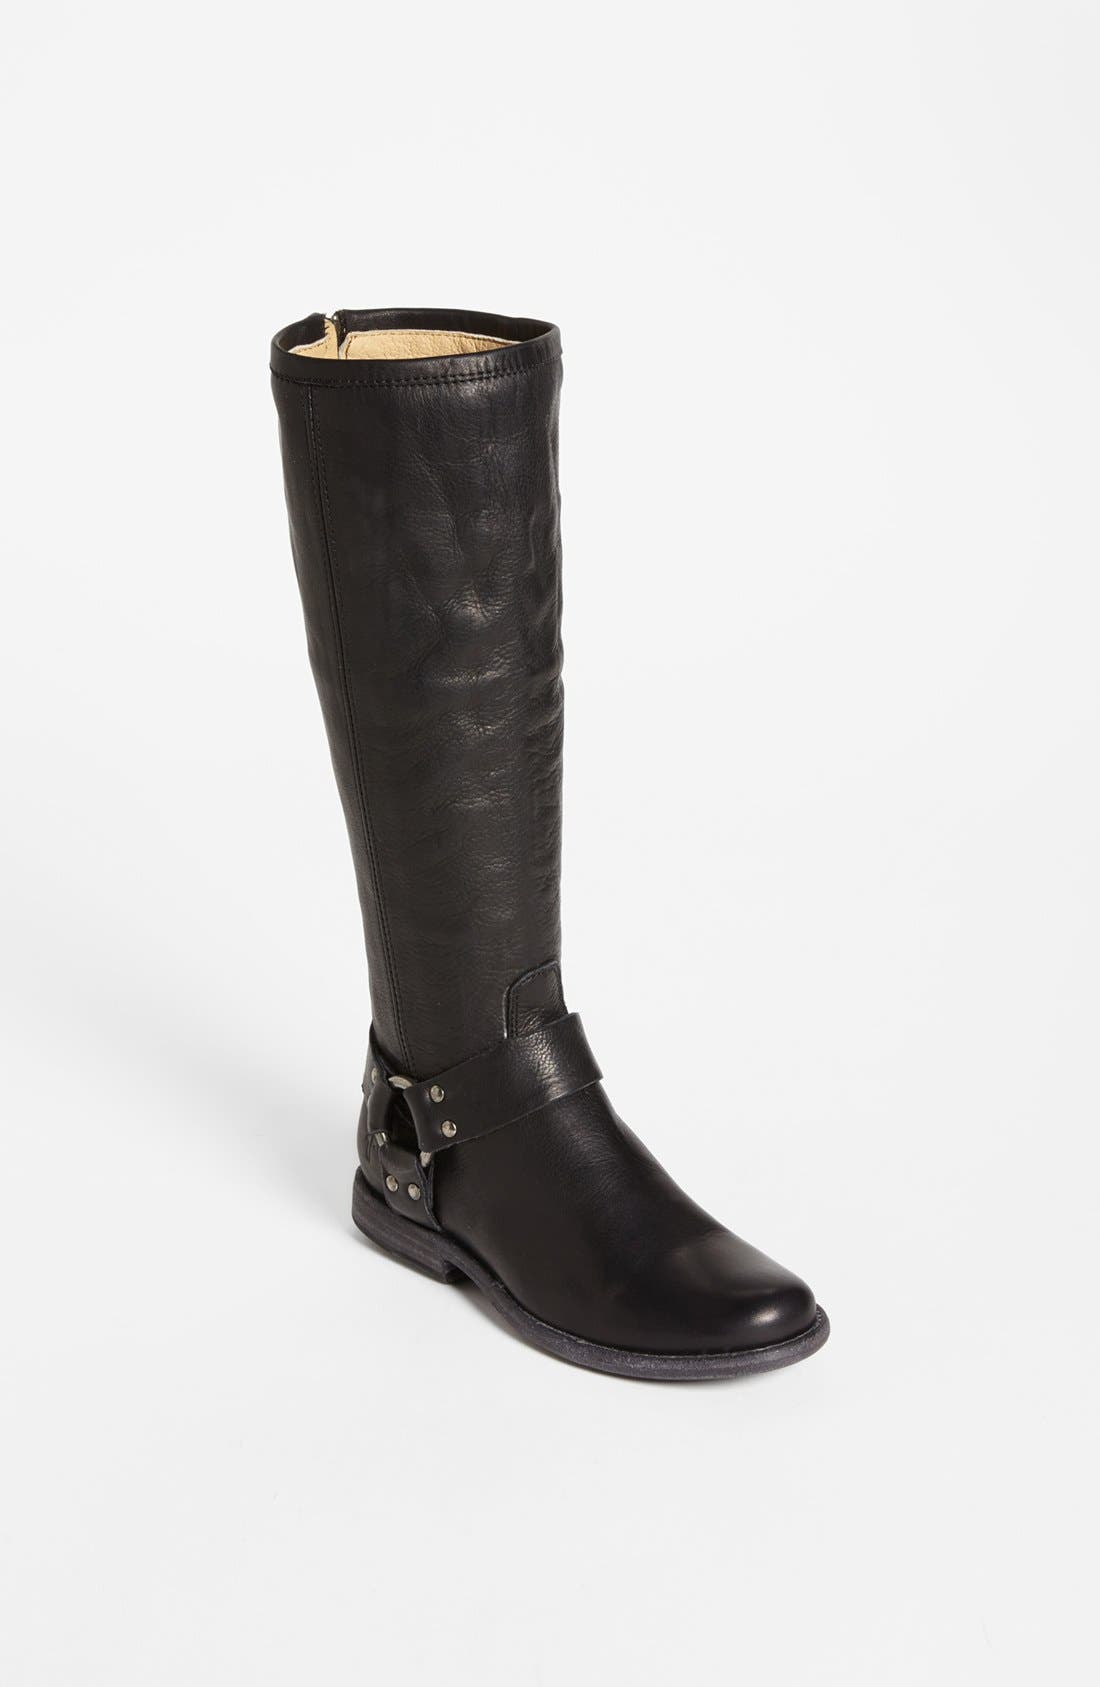 Alternate Image 1 Selected - Frye 'Phillip Harness' Tall Washed Leather Riding Boot (Women)